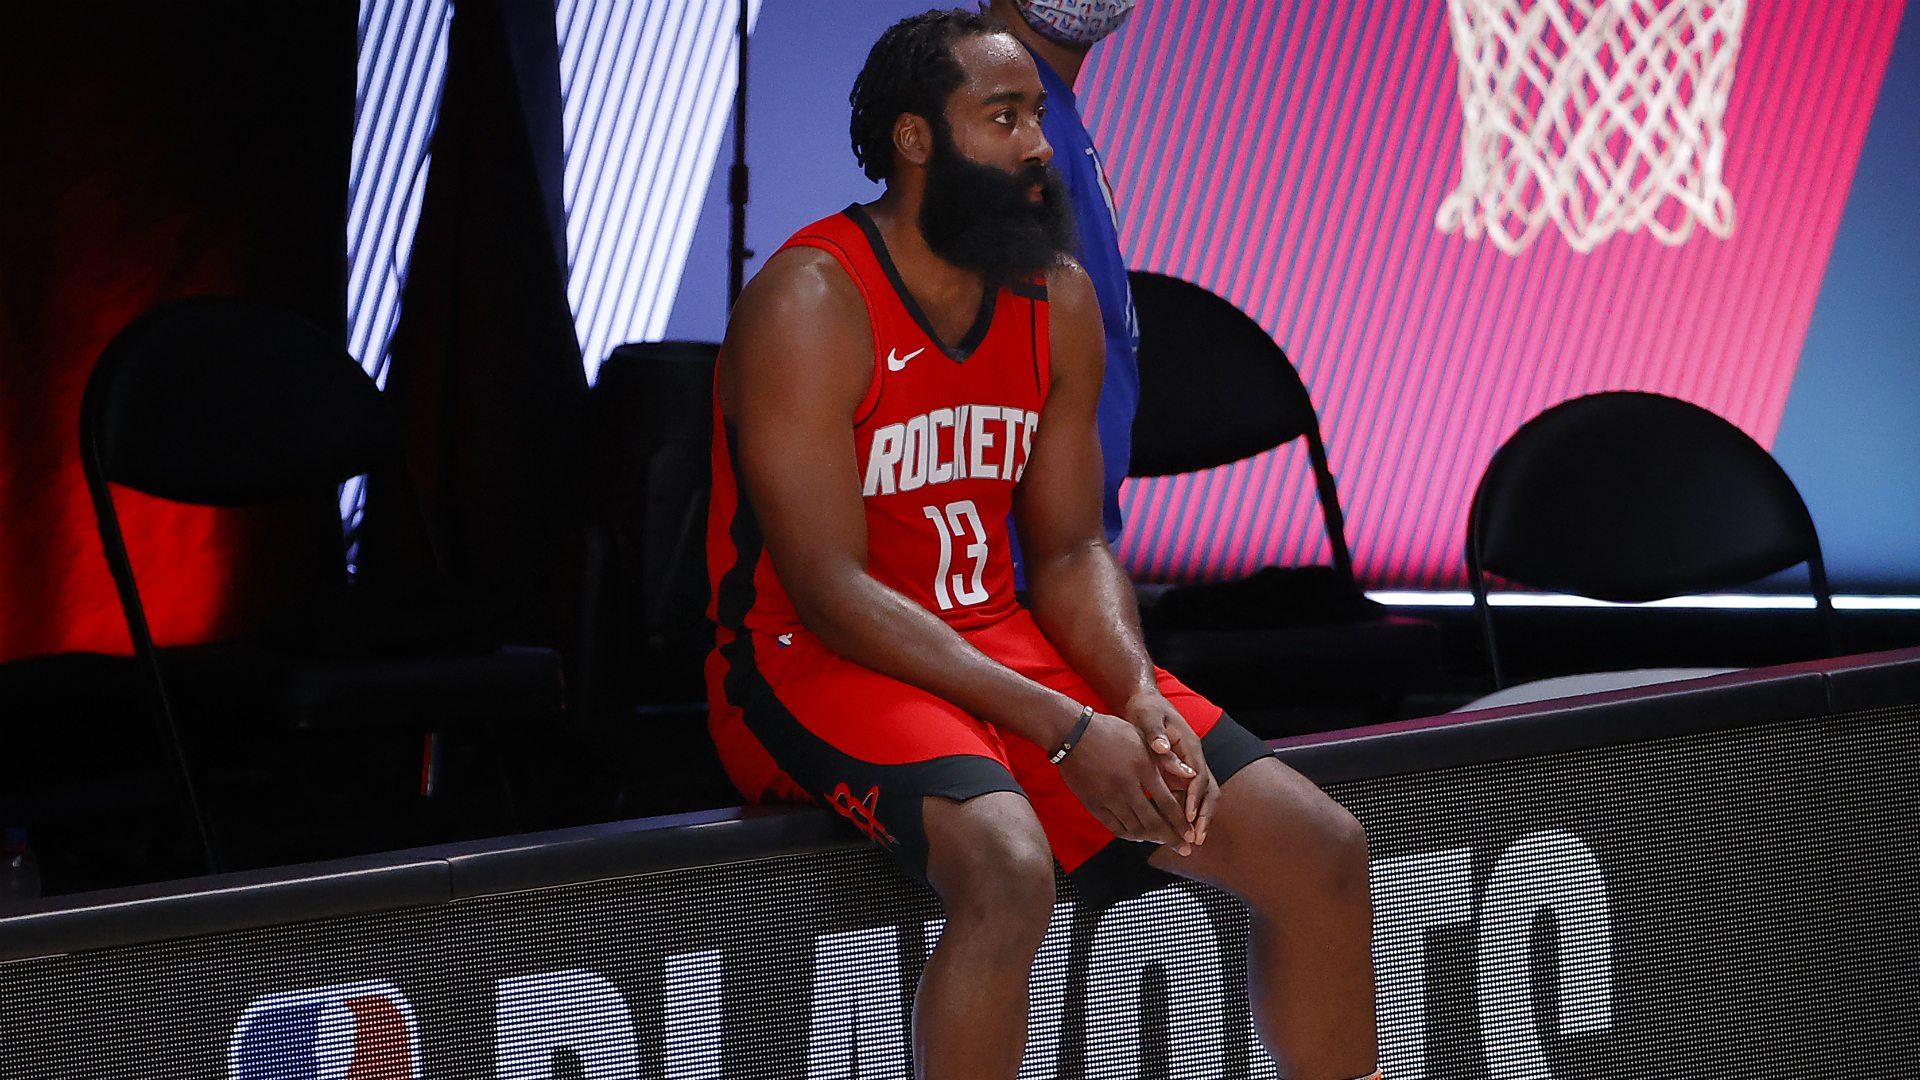 The Brooklyn Nets or Philadelphia 76ers? We look at where James Harden would be suited and what he would bring, using Stats Perform data.